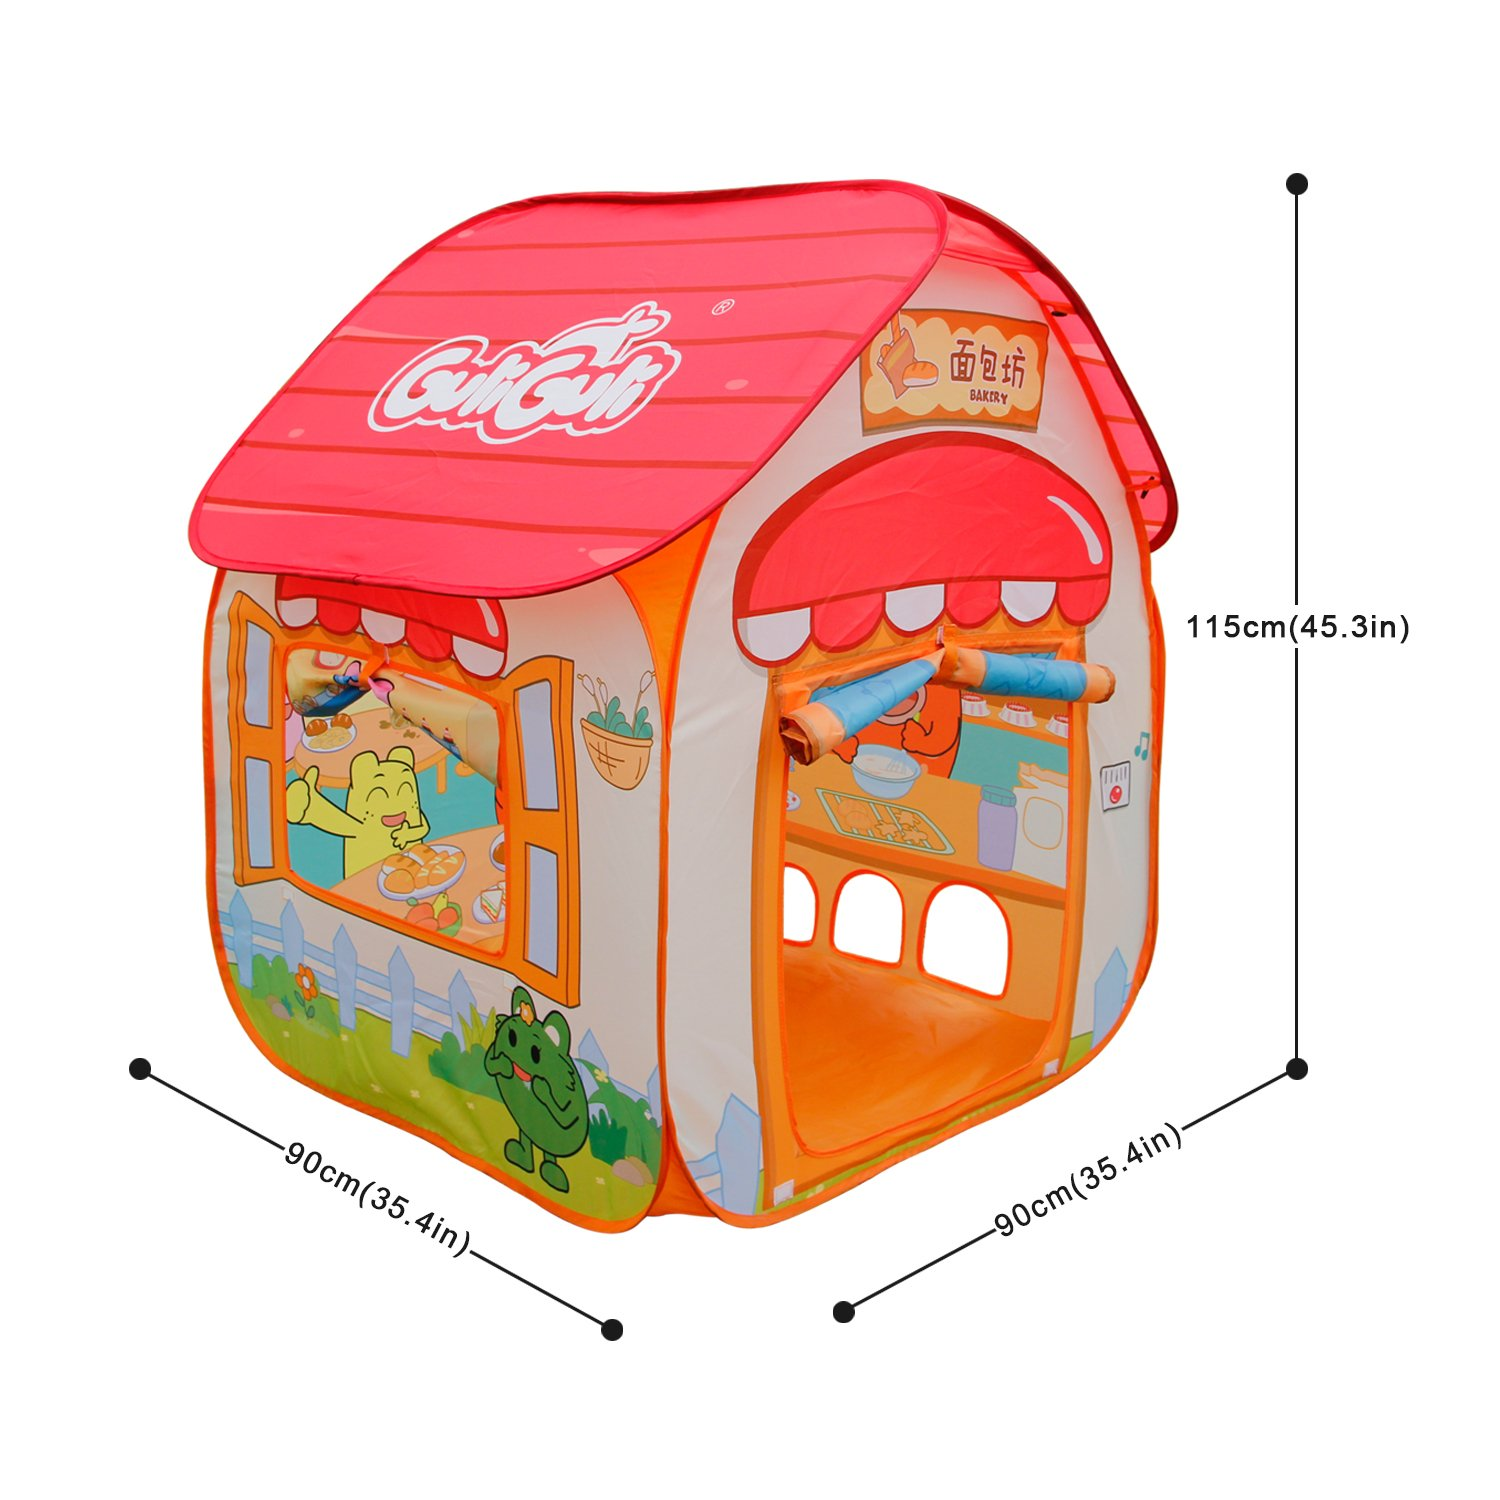 ALPIKA Play Tent Boys Girls GuliGuli Pop up Toys Kids Tent Indoor & Outdoor Playhouse Children (not Included Balls)